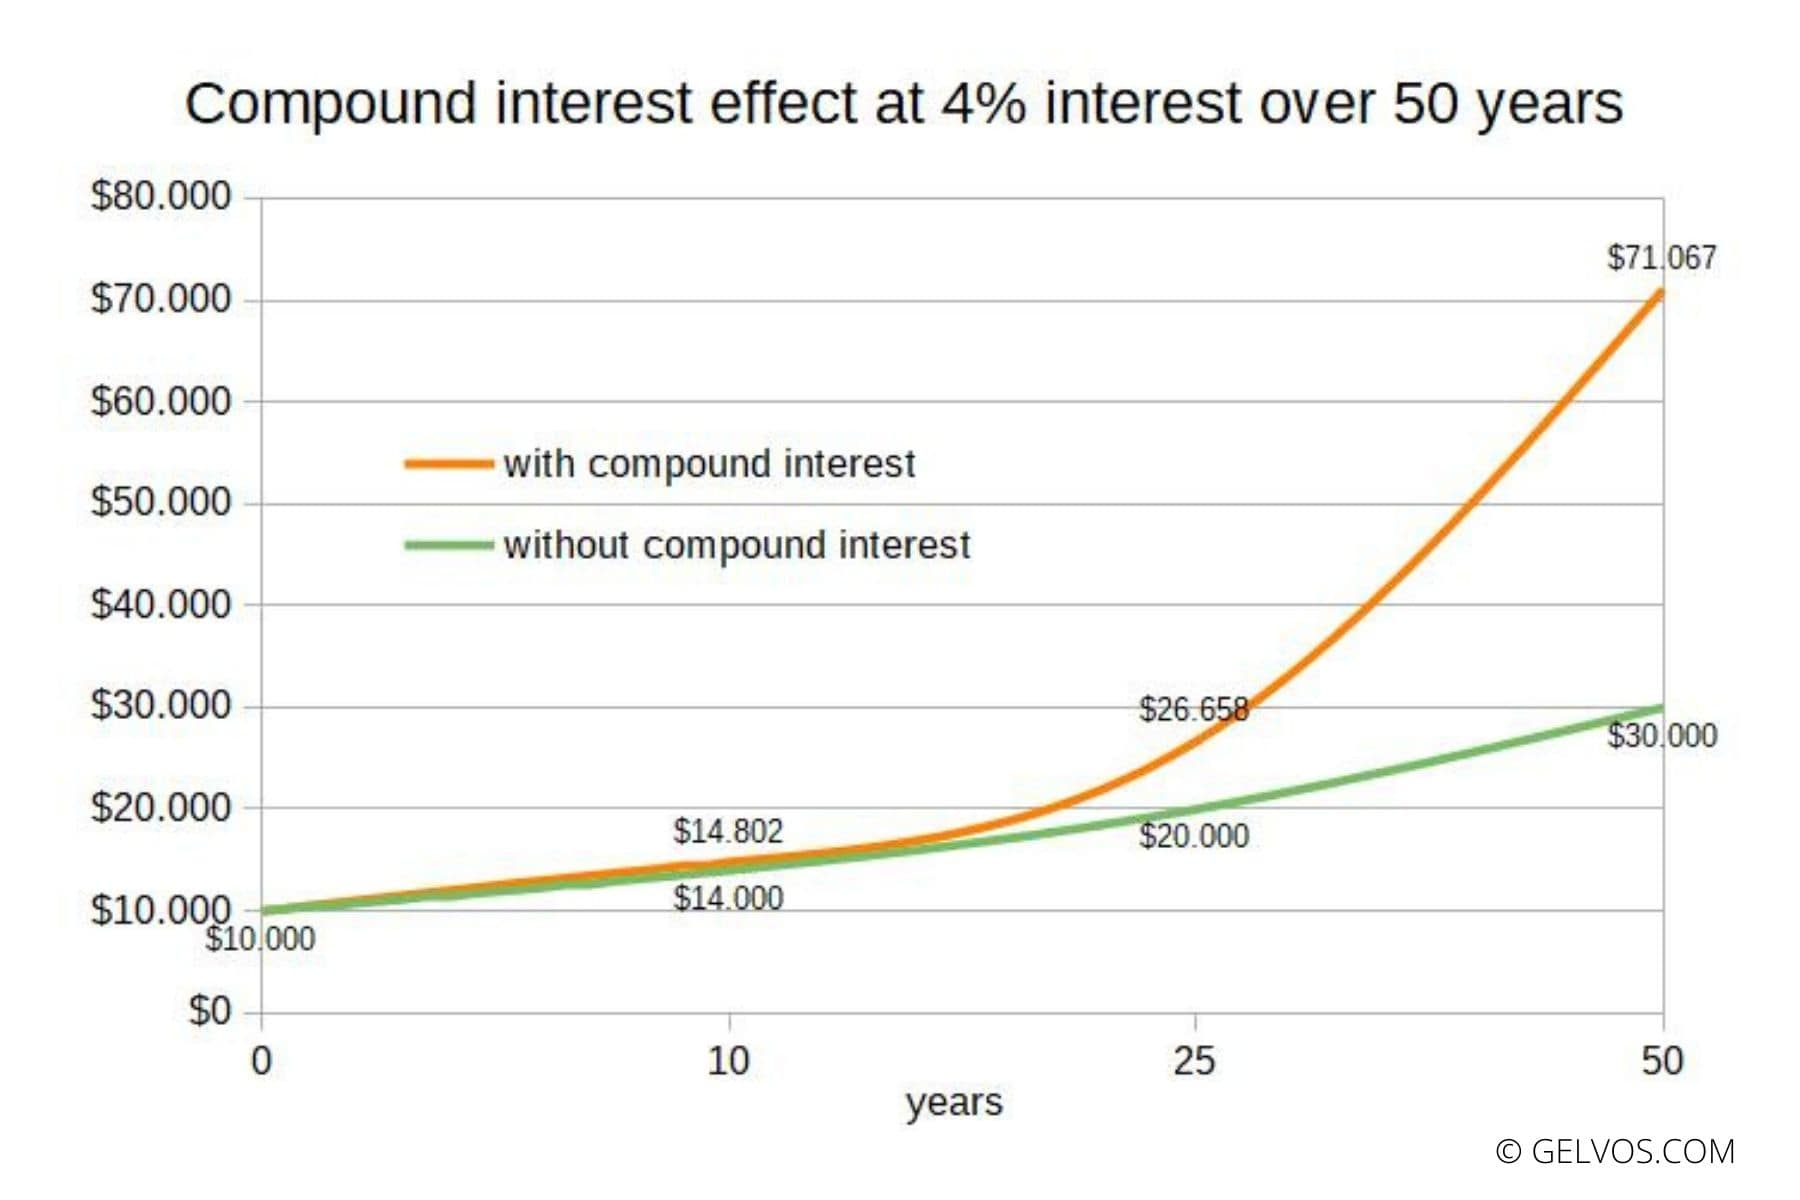 Compound interest effect at 4% interest over 50 years